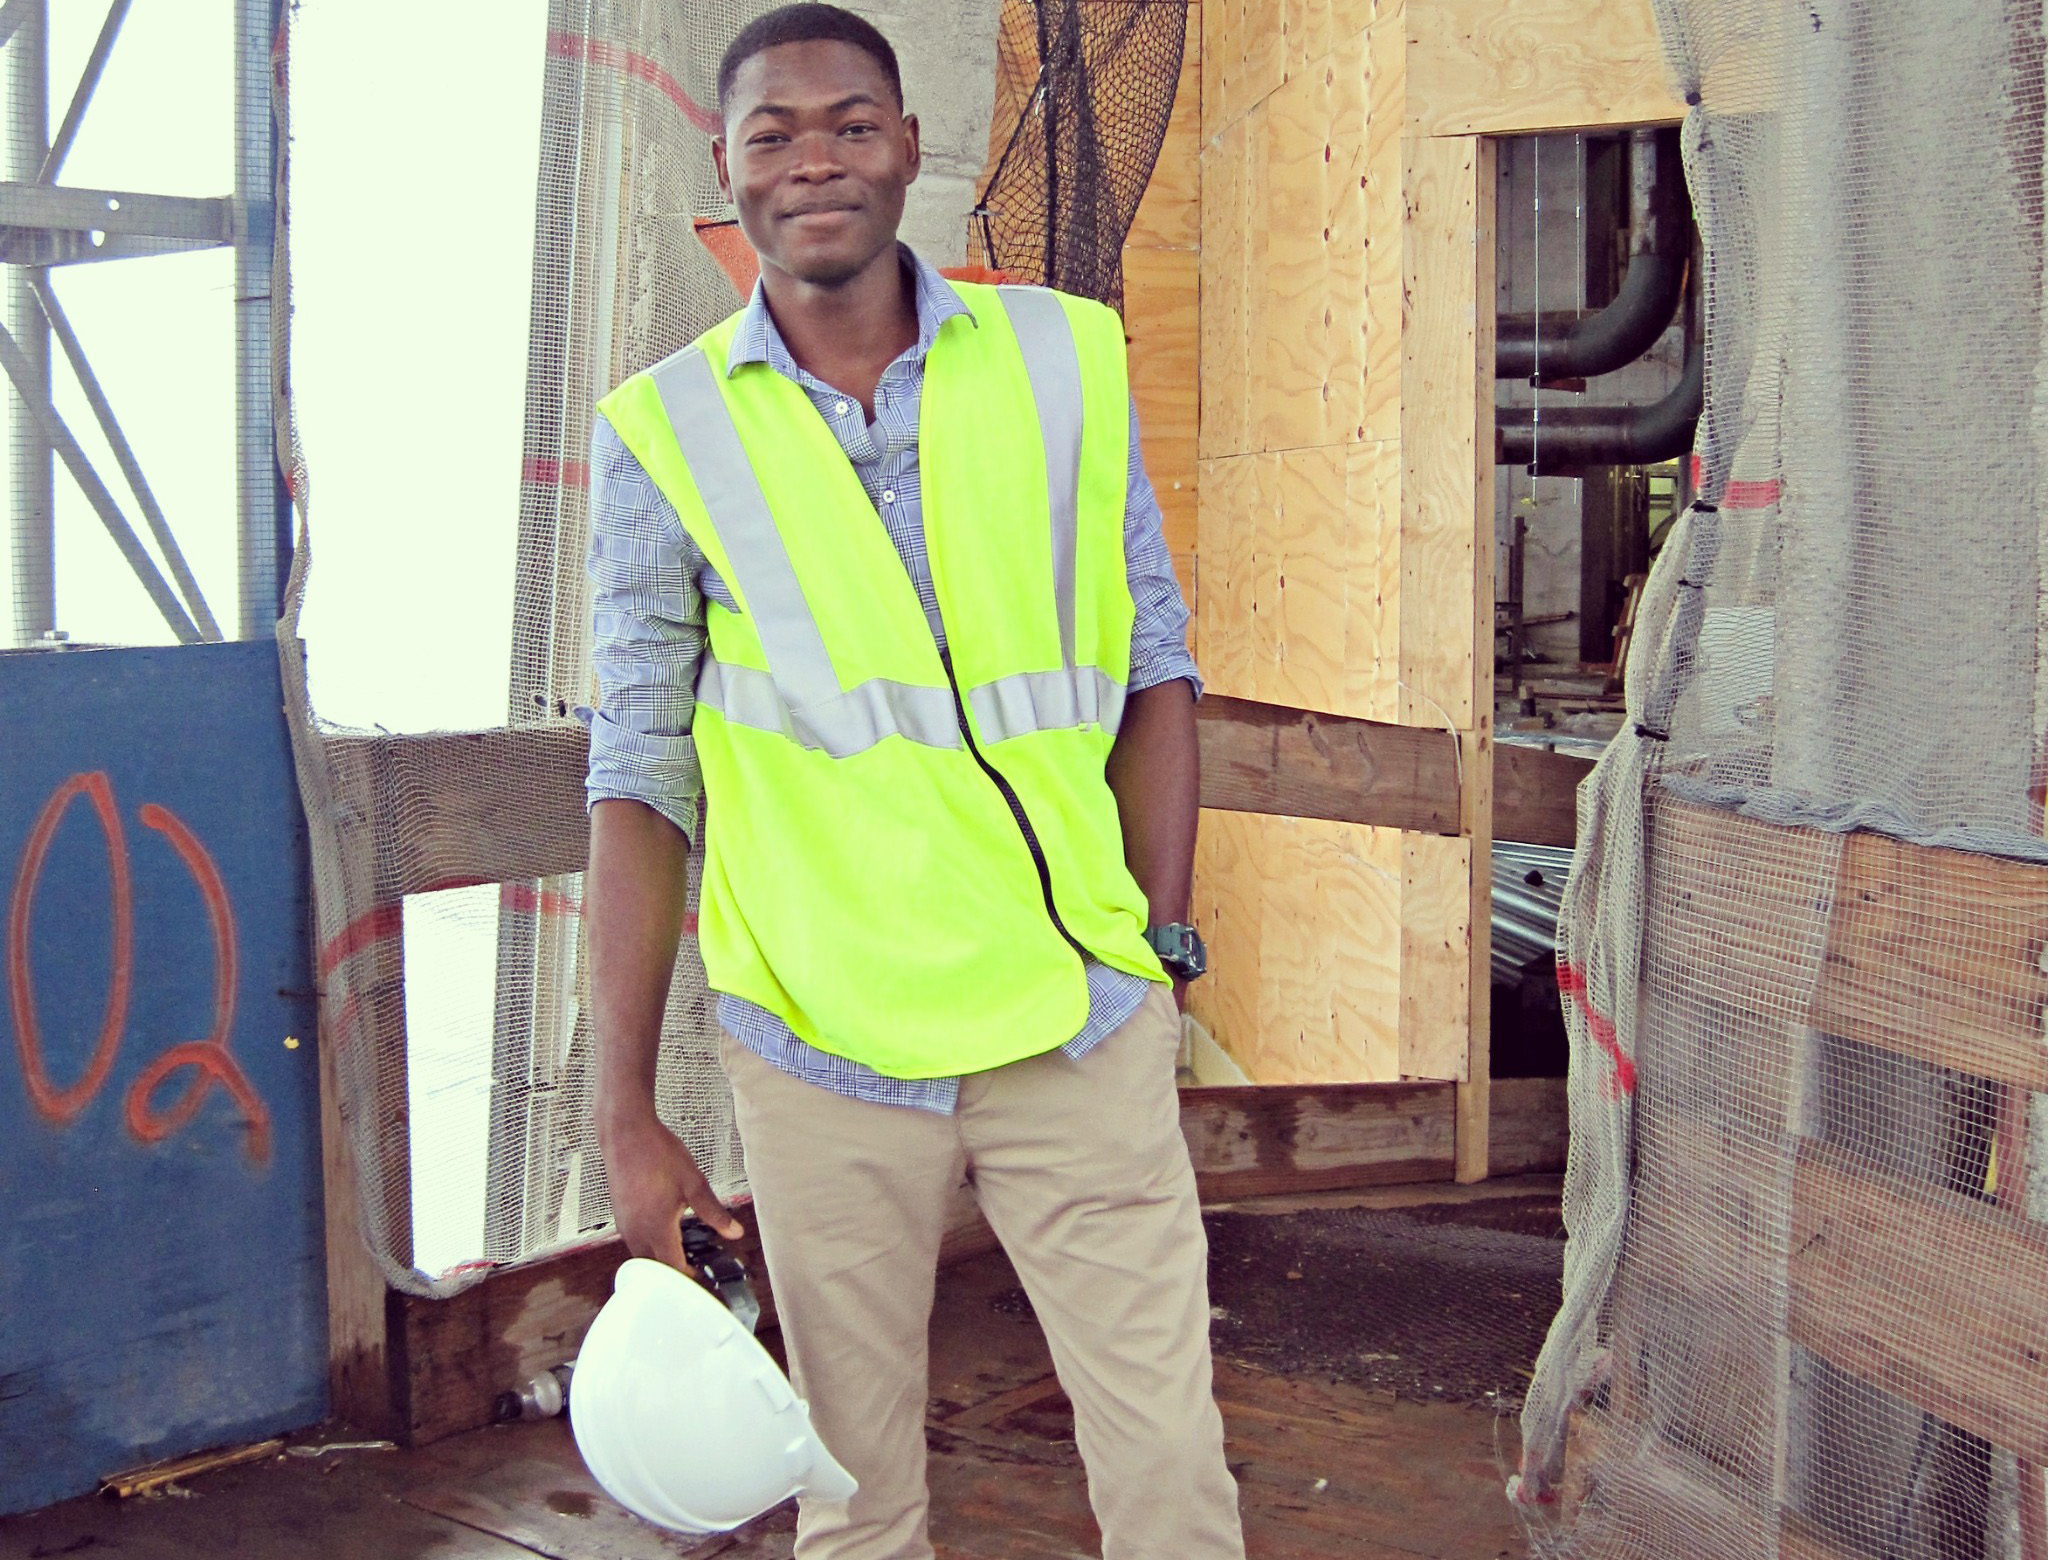 Gideon stands at a construction site in a yellow safety vest, holding a construction helmet in his right hand.